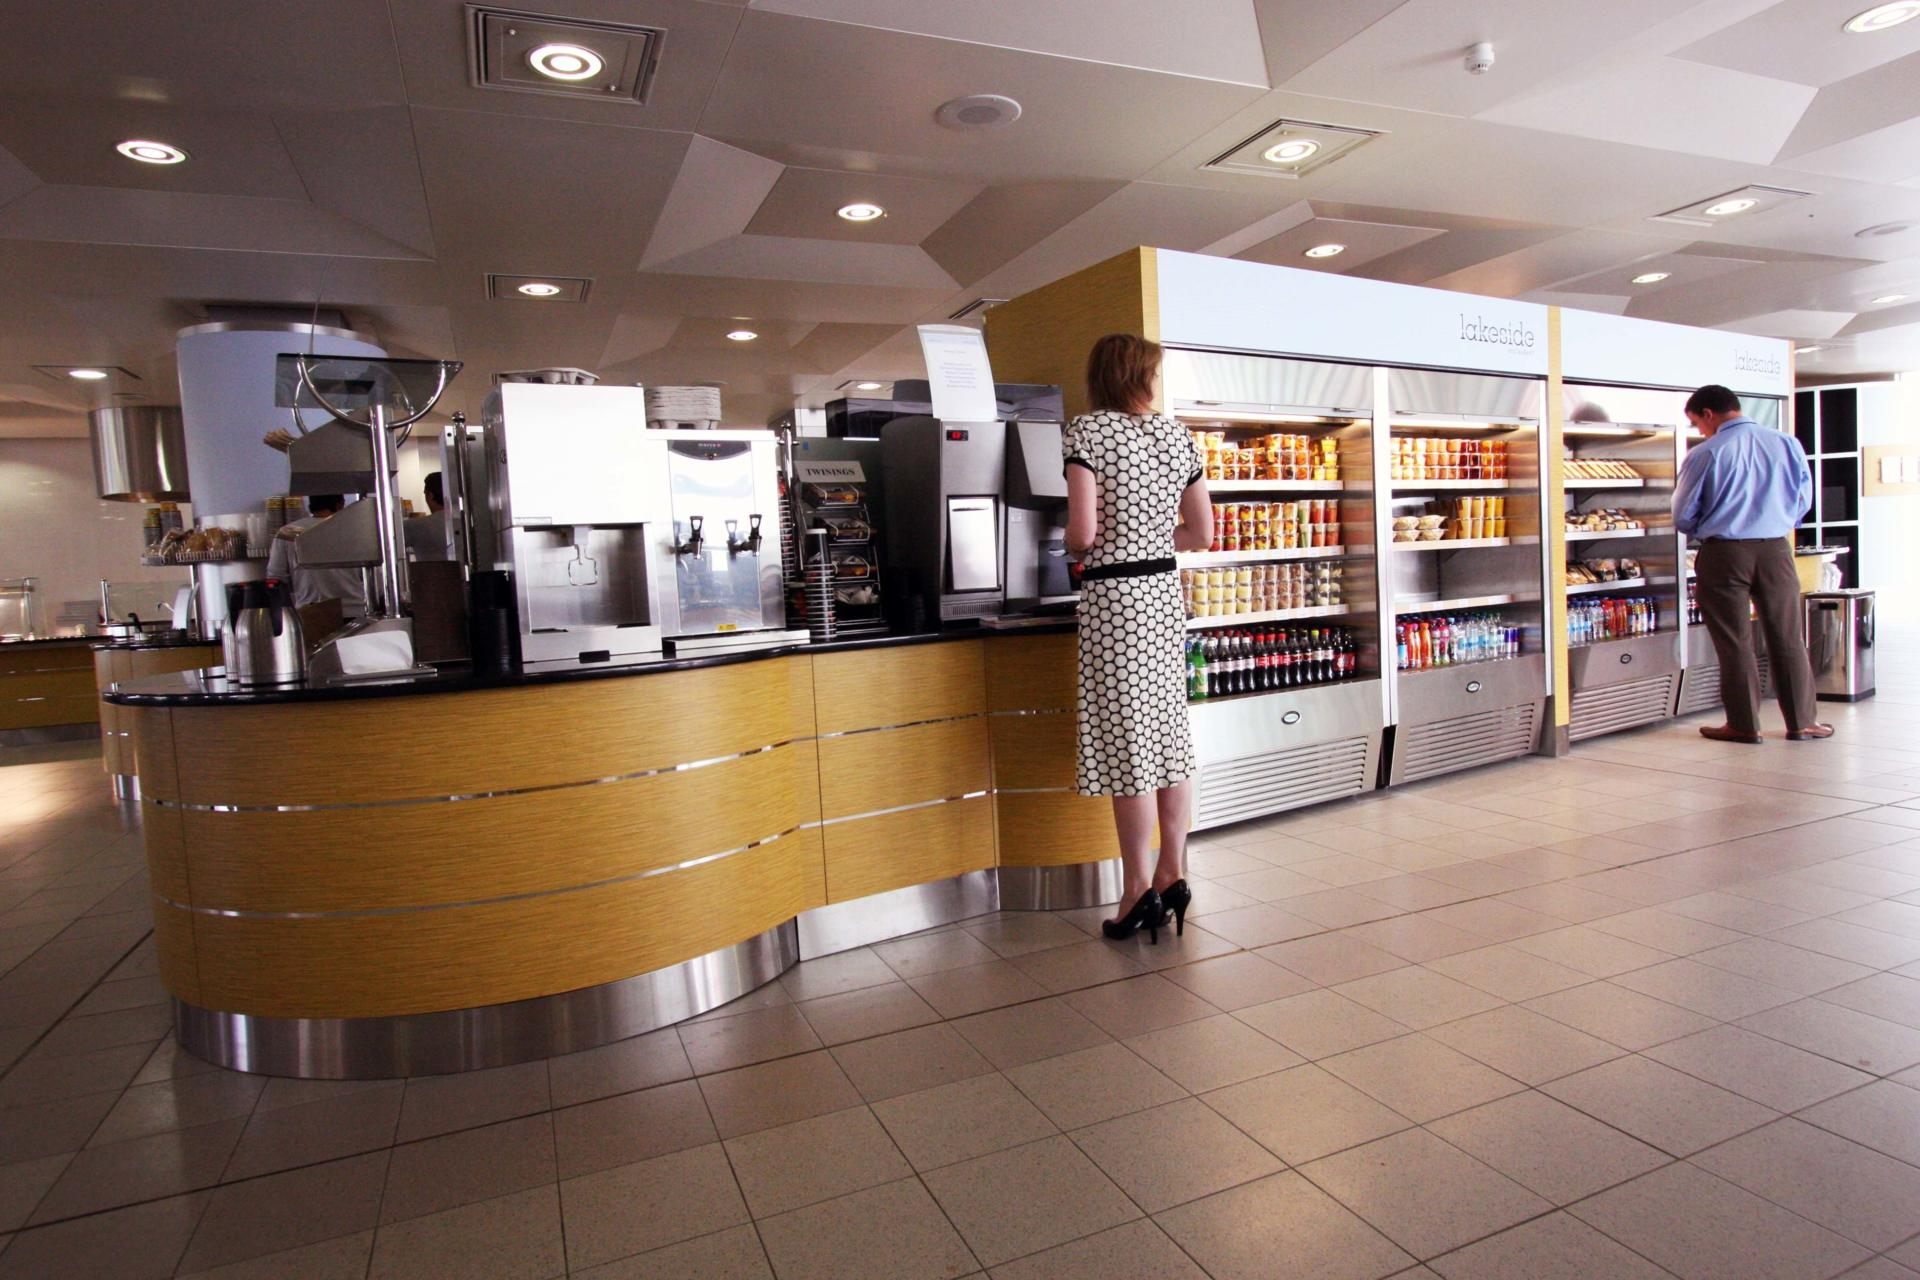 nationwide_swindon_staff restaurant_servery (16)